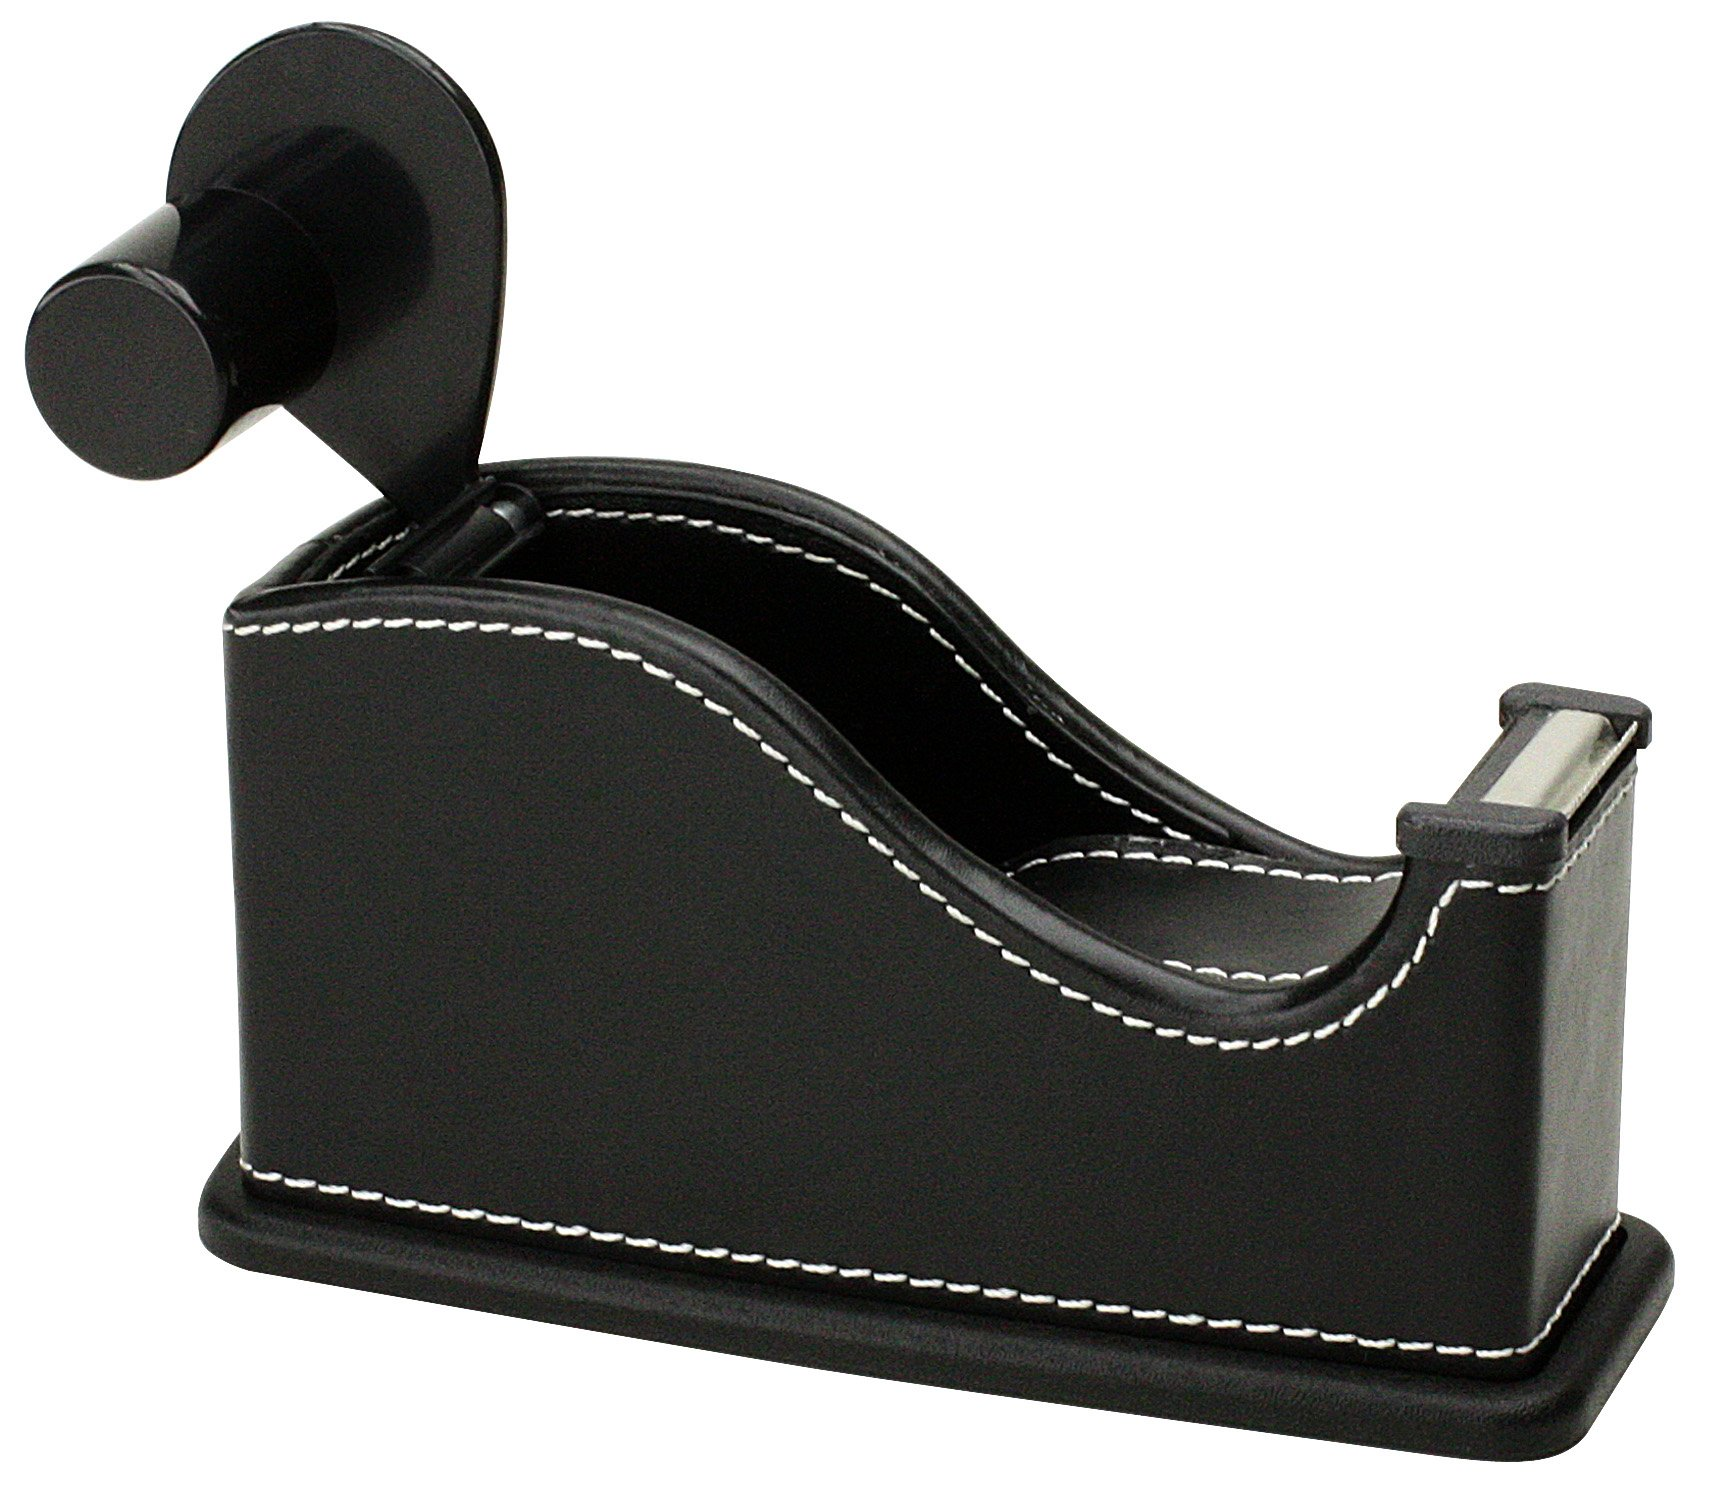 Hipce Tape Dispenser (Black) by HipCE (Image #2)